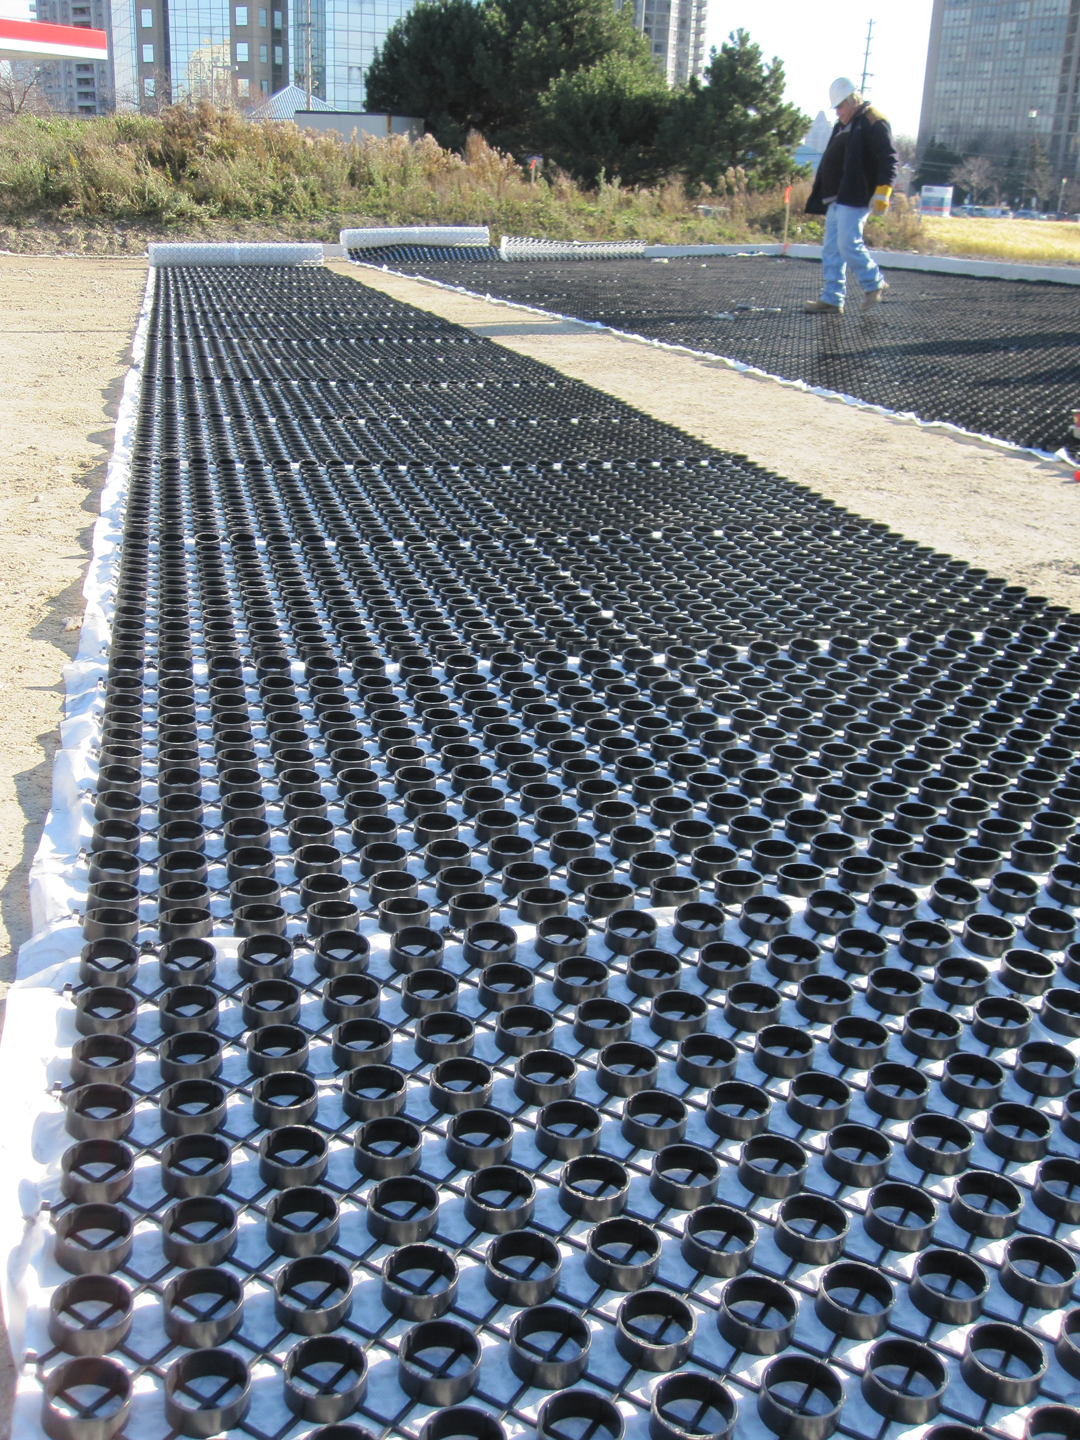 The ring and grid structure of the permeable paving roll.